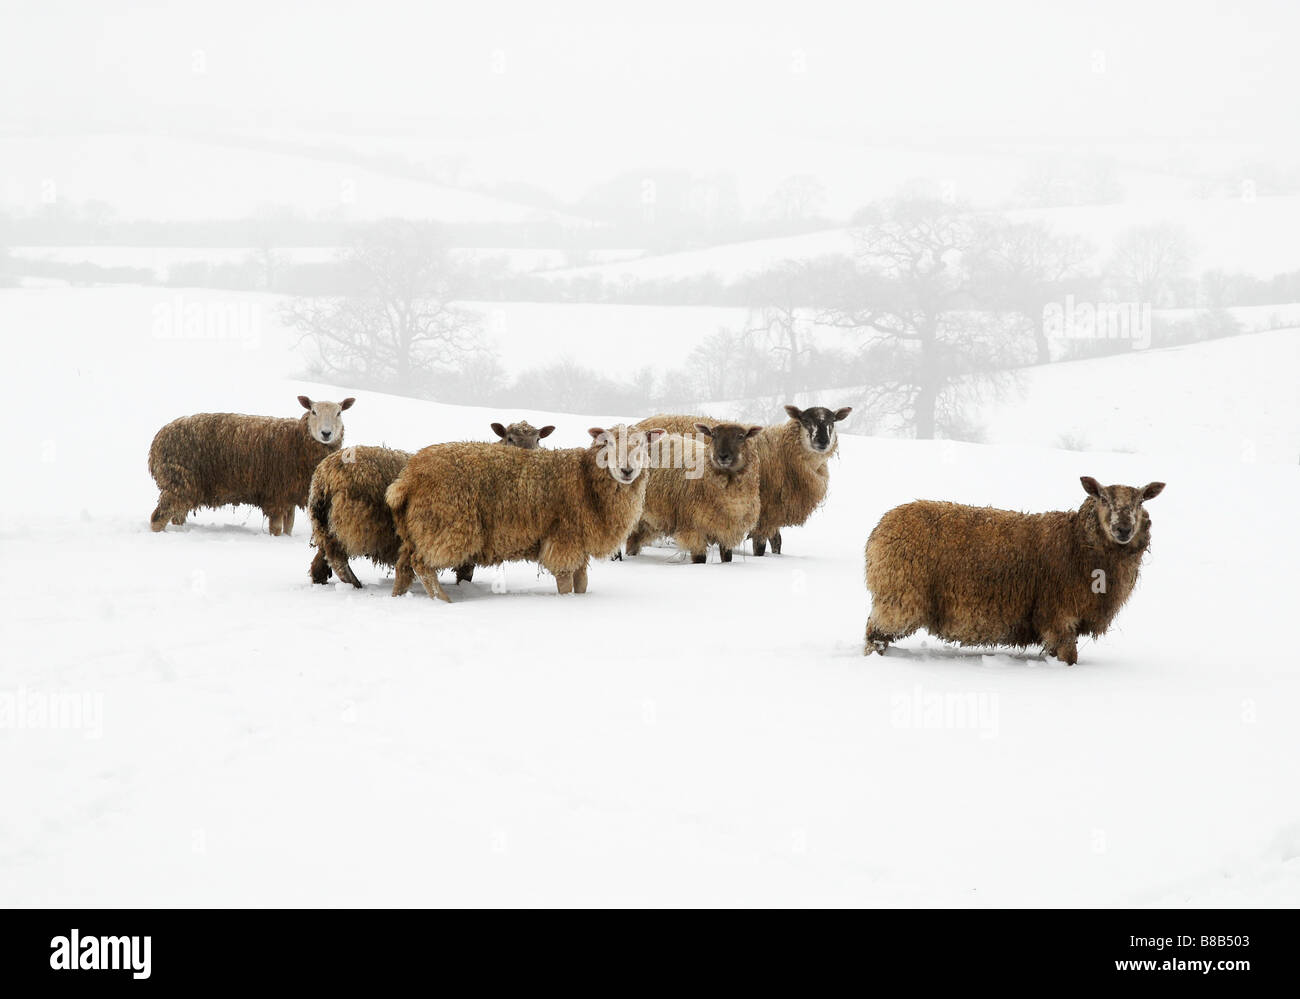 Sheep in snow and fog at Hanging Houghton Northants UK February 2009 Photo by John Robertson - Stock Image